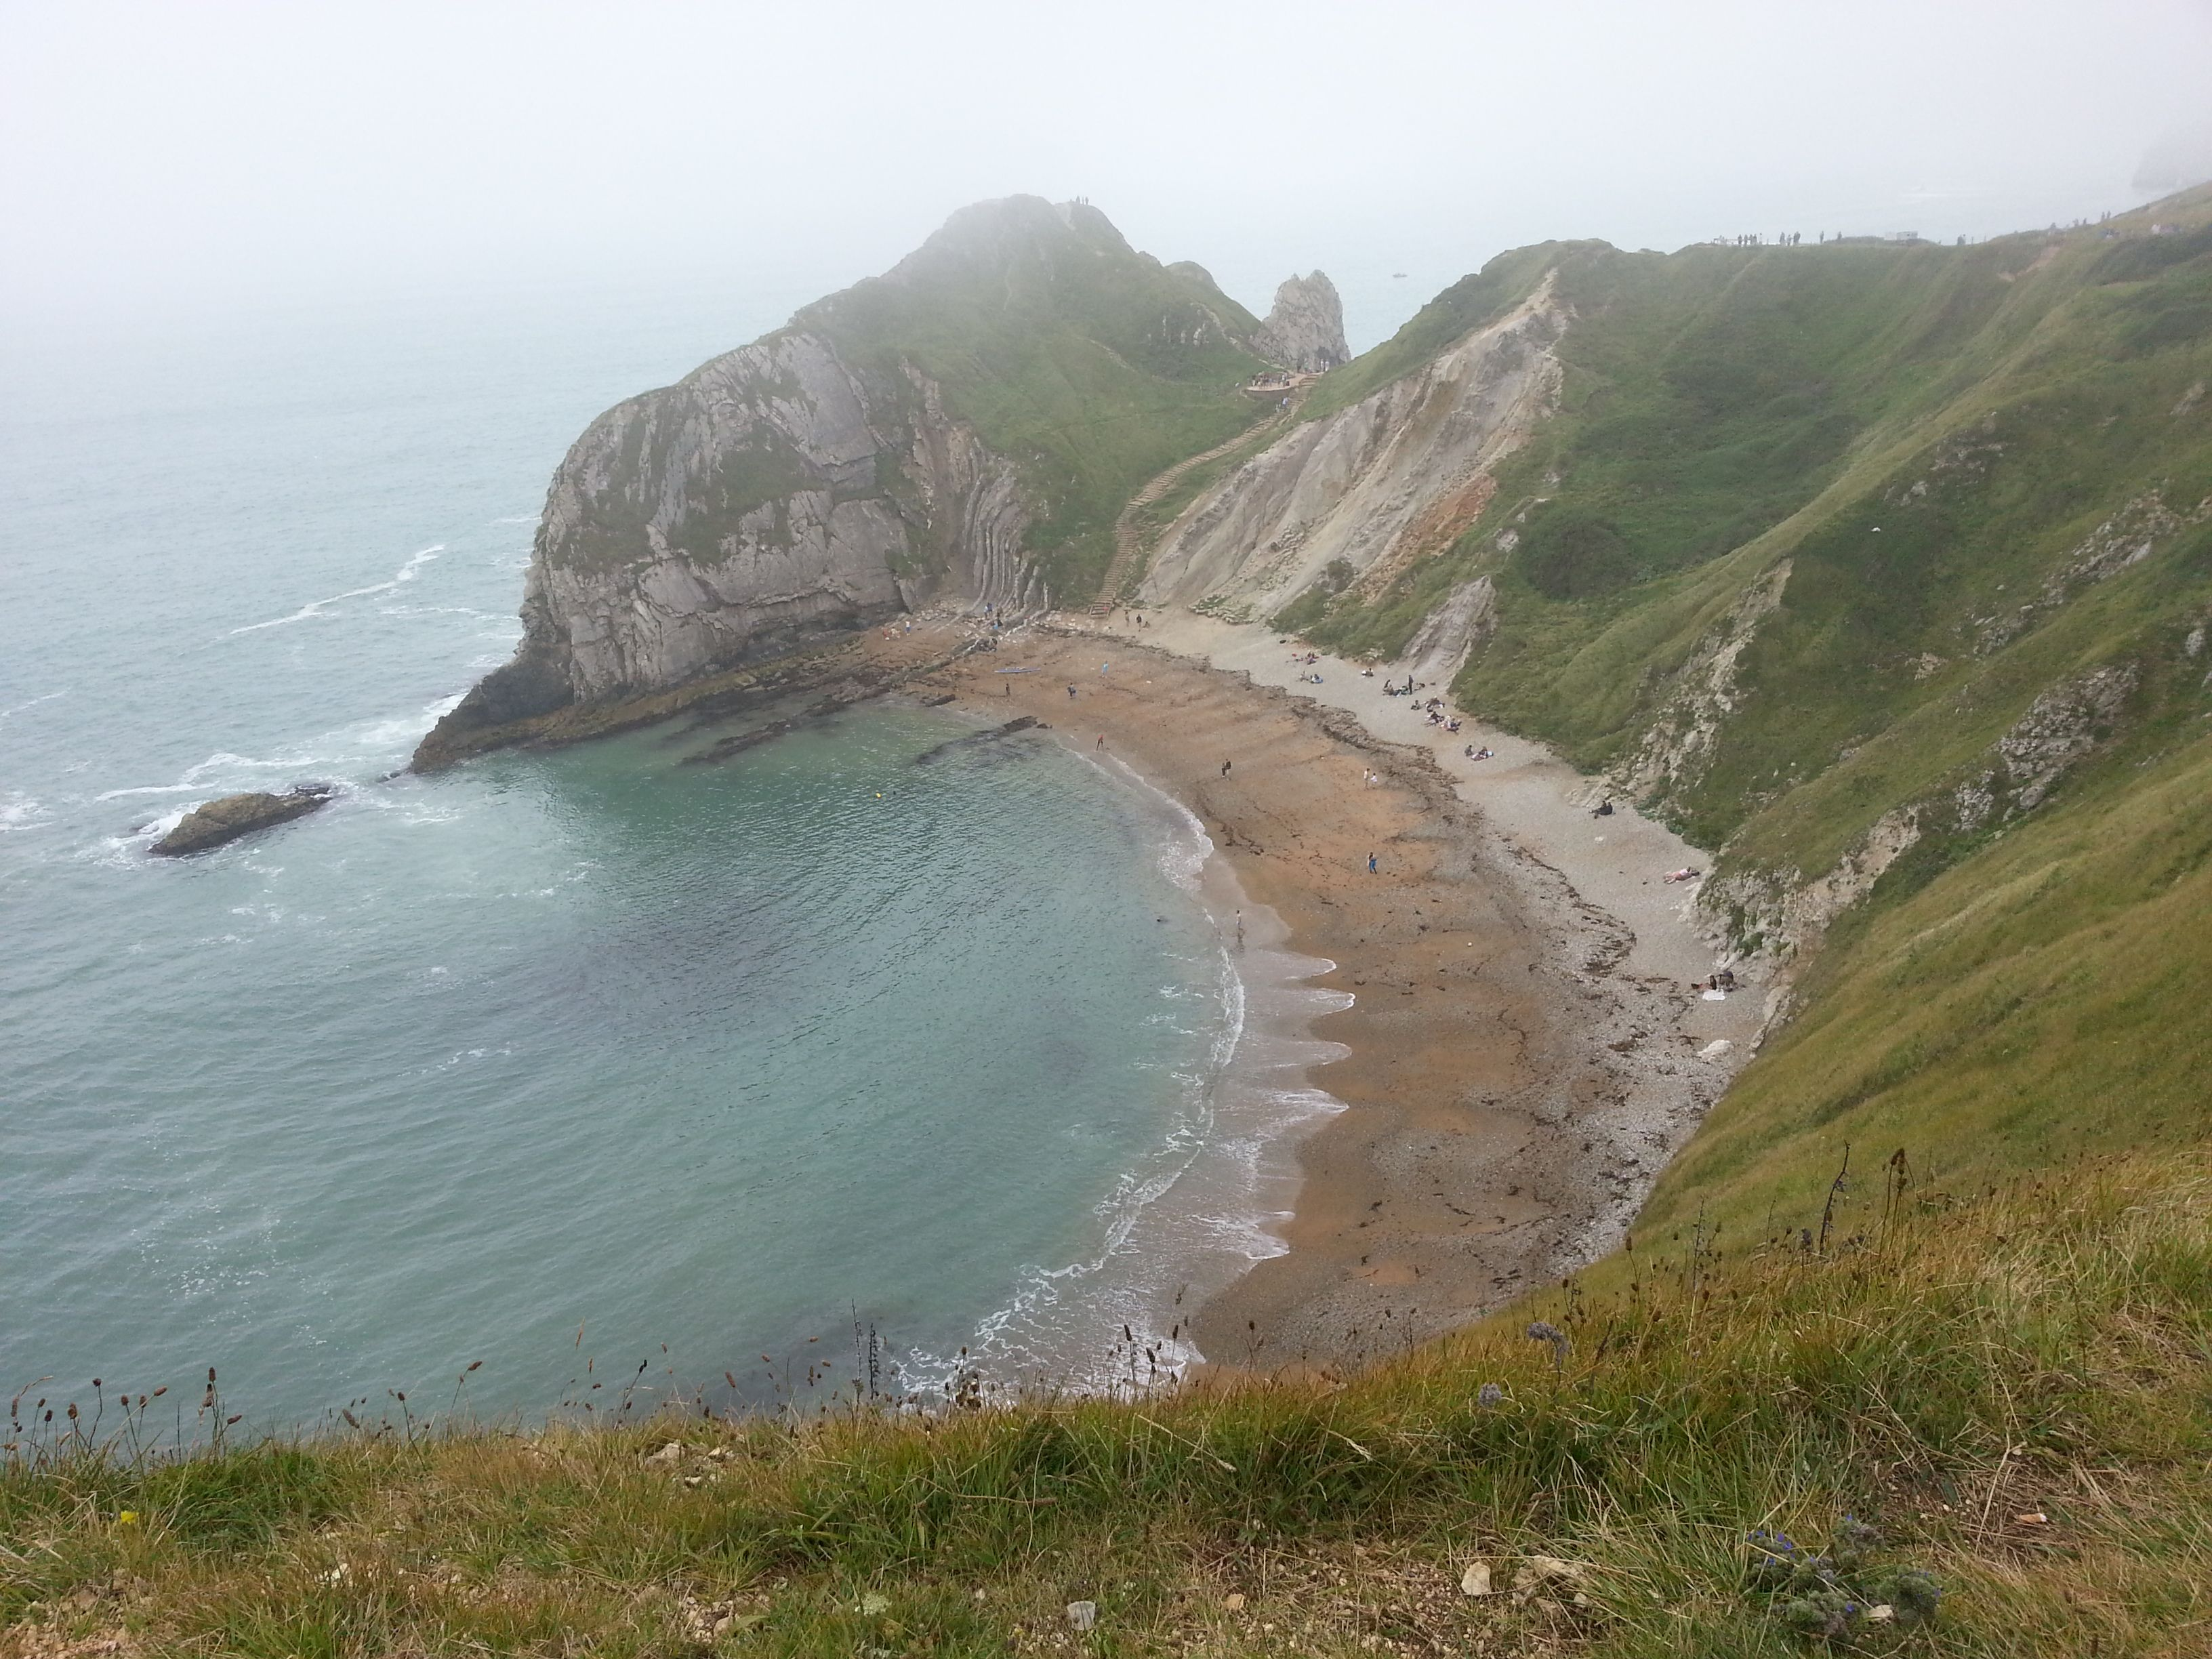 Durdle Door, Lulworth Cove, Dorset, UK, Aug 2012